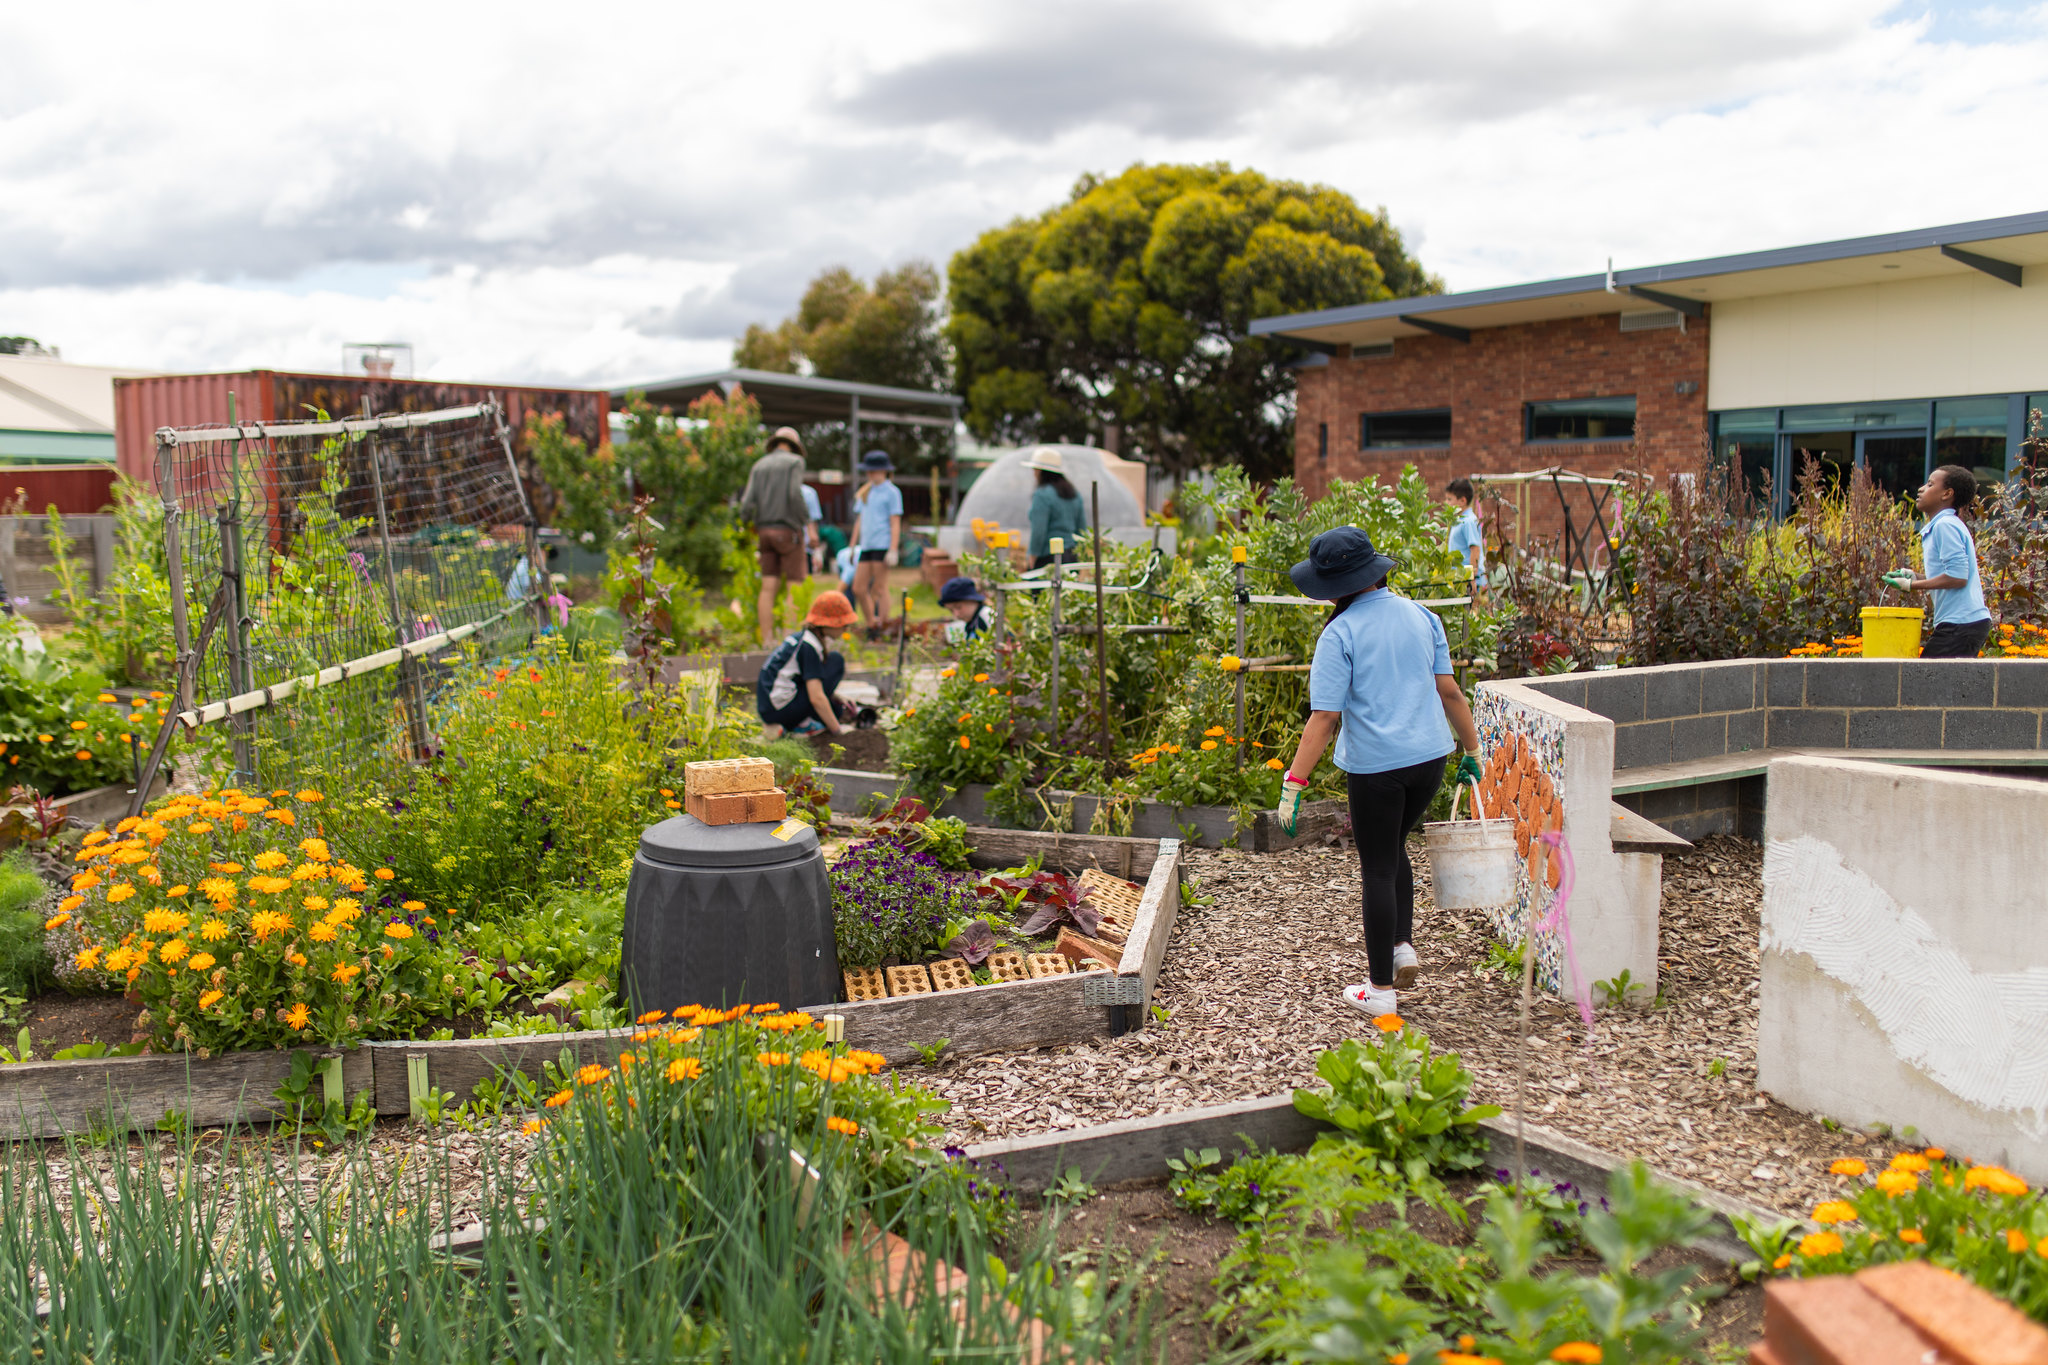 24 Carrot has been working in Gagebrook to build a community garden where regular activities are hosted in art, gardening and cooking. Photo: Jesse Hunniford, MONA